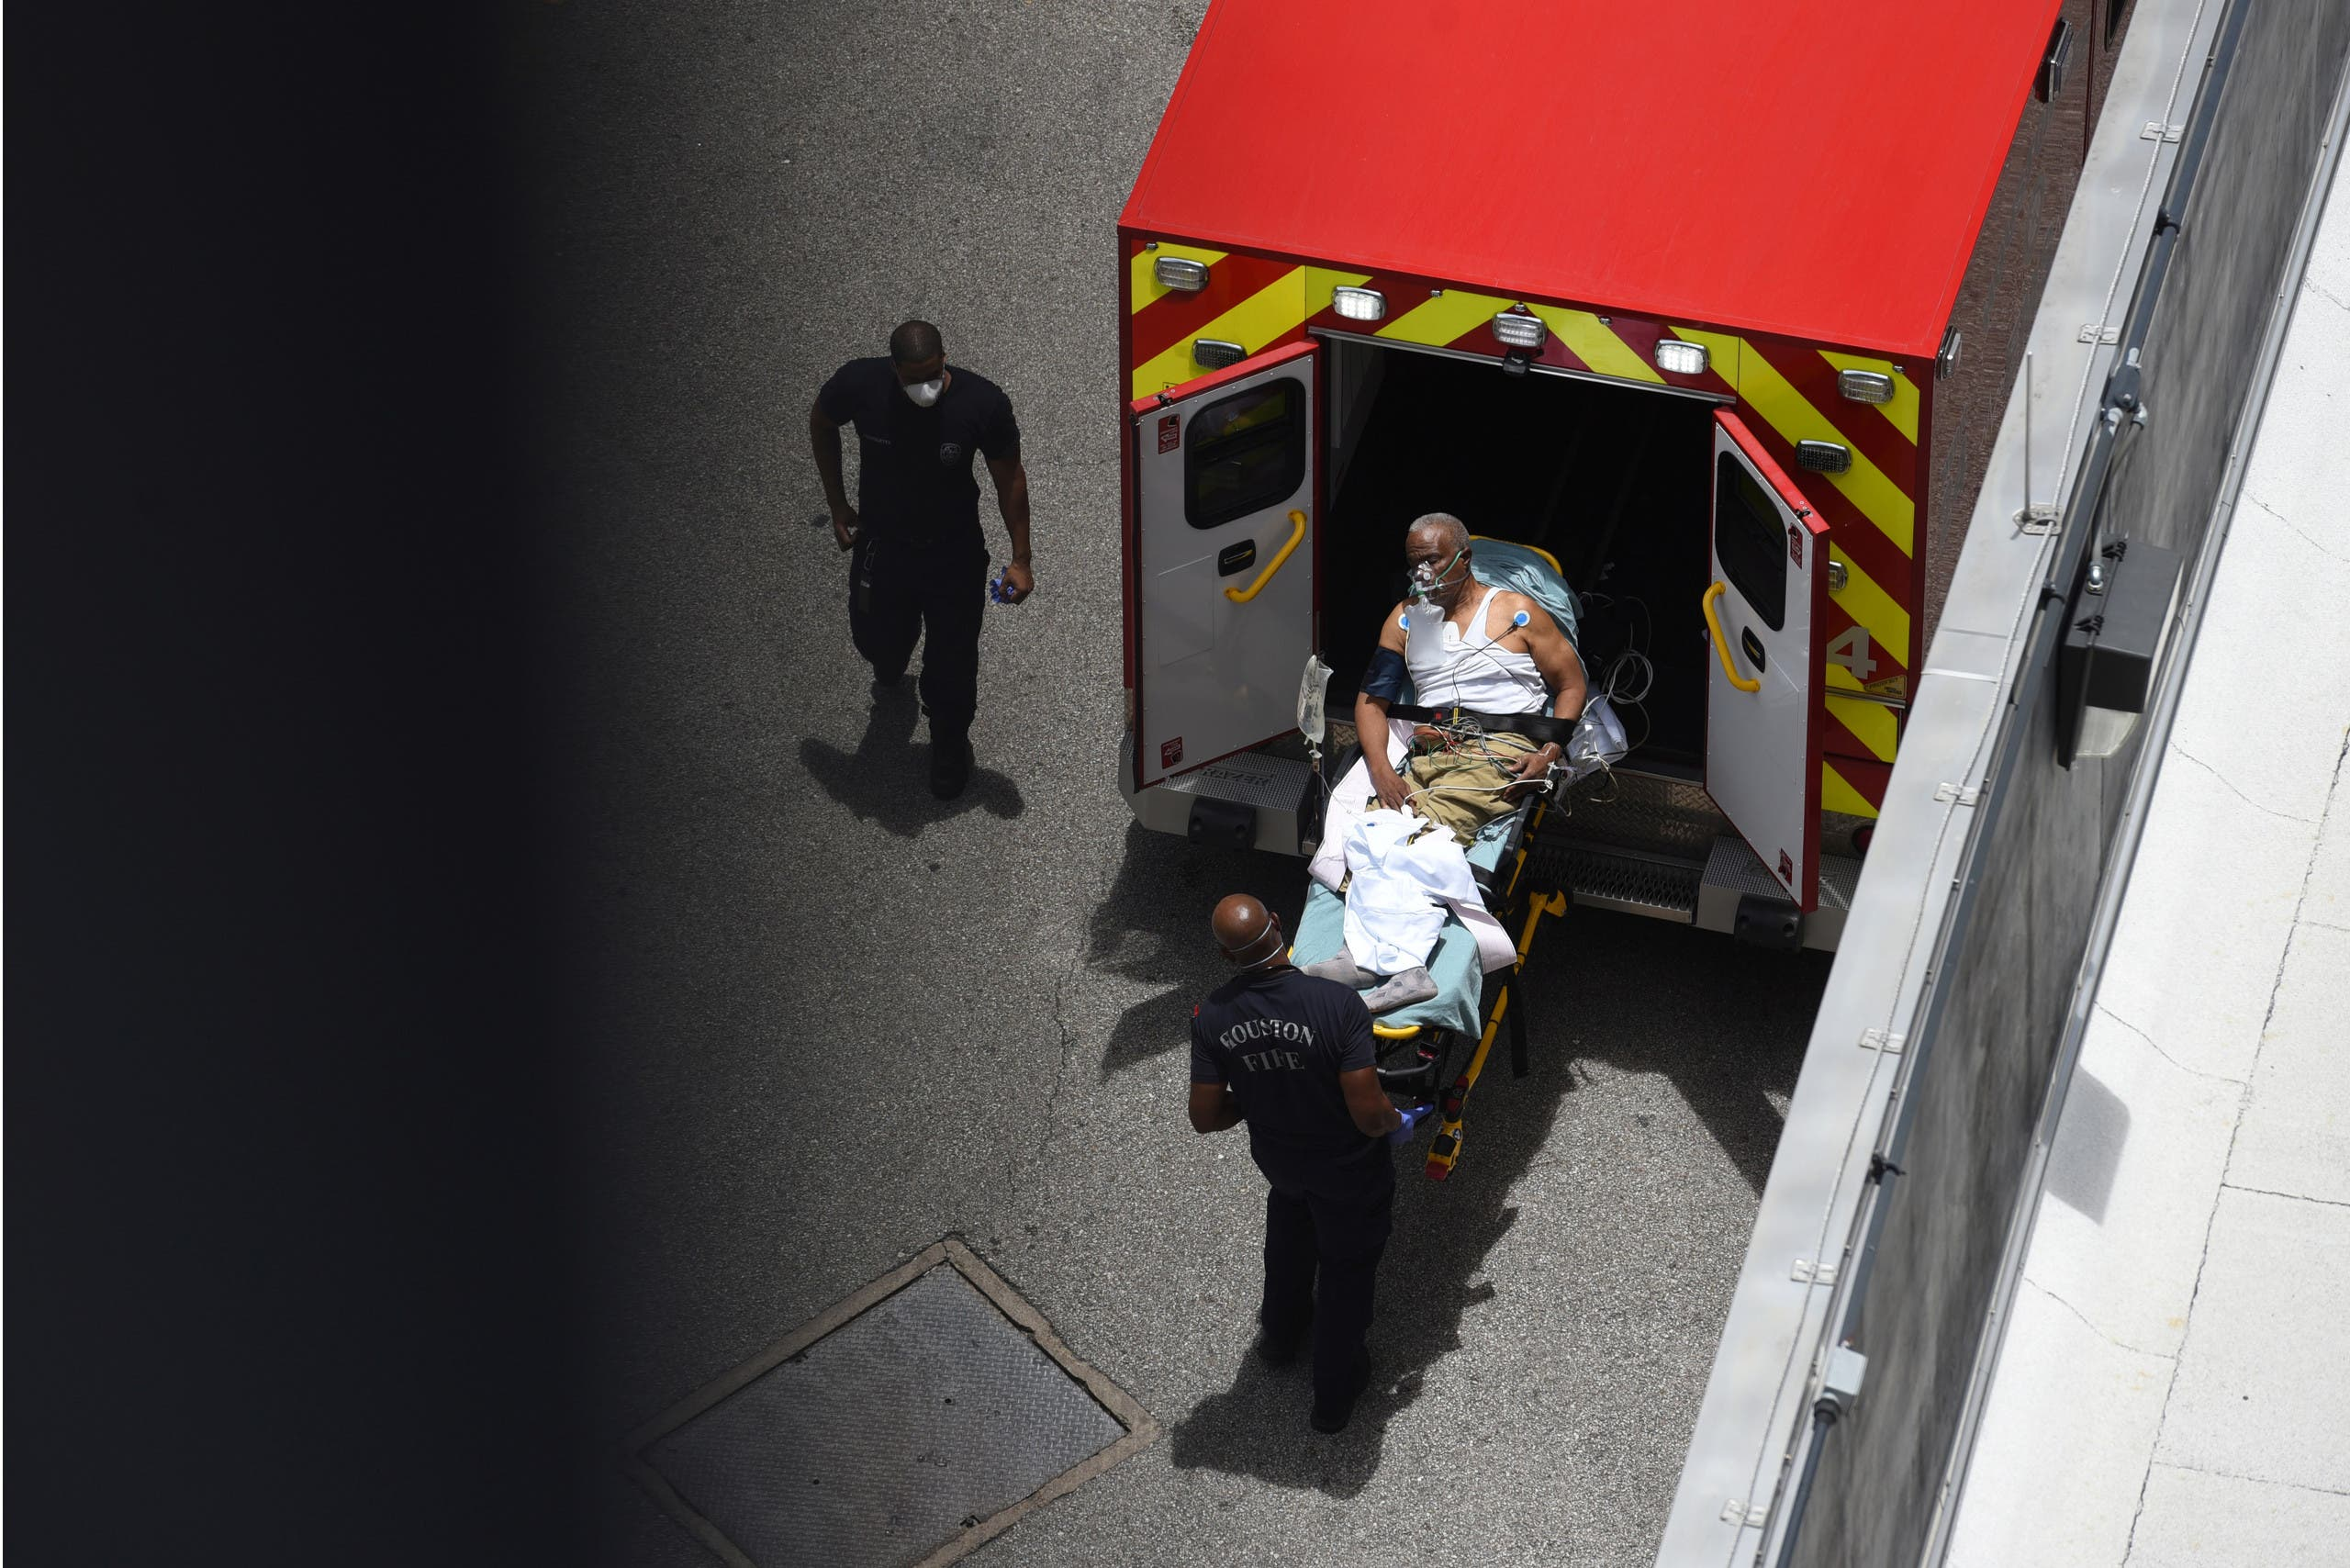 A man arrives at Houston Methodist Hospital emergency room on a stretcher amid a coronavirus disease (COVID-19) outbreak in Houston, Texas, US, June 28, 2020. (Reuters)